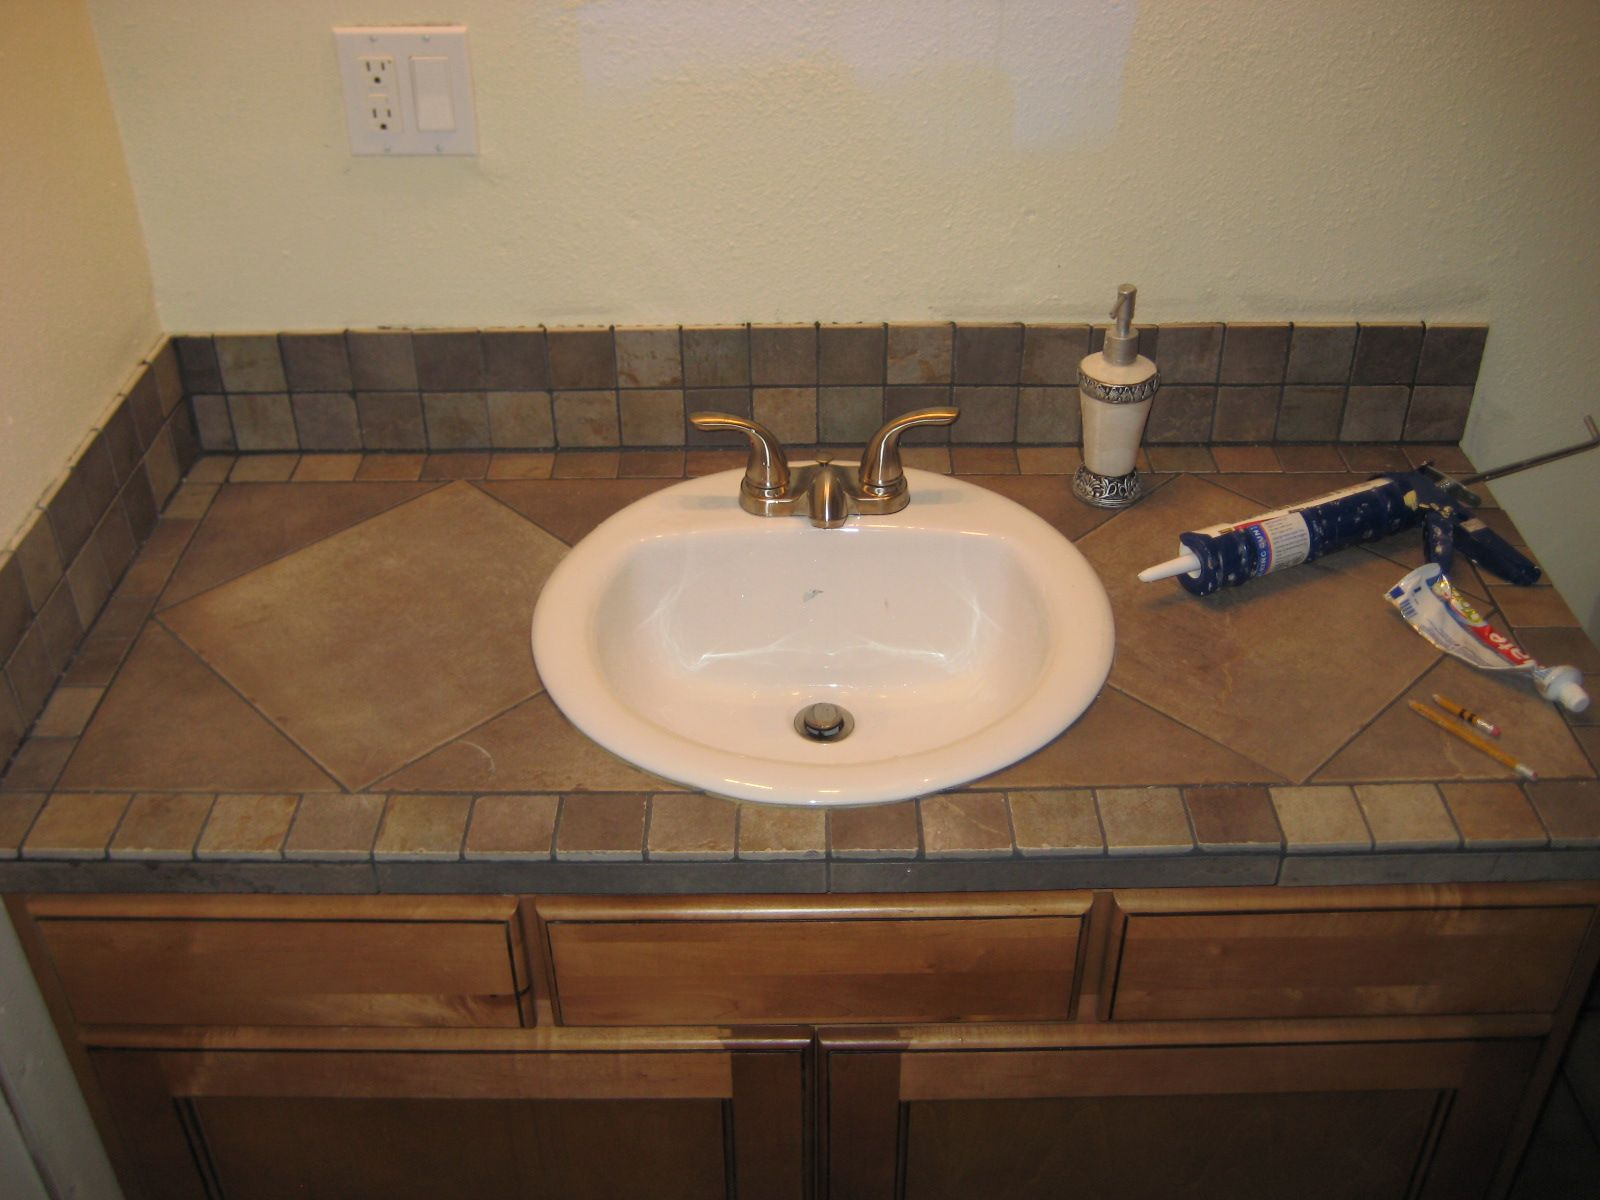 Bathroom Vanity Tile Countertop Tiled Countertop Bathroom